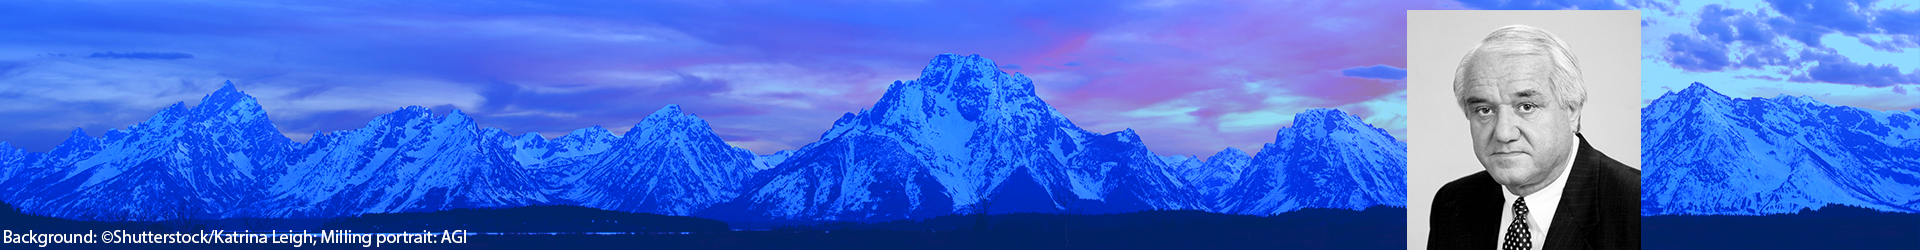 Photo of Dr. Marcus Milling. Background image of the Grand Tetons at sunset. Credits: Background: ©Shutterstock/Katrina Leigh; Milling portrait: AGI